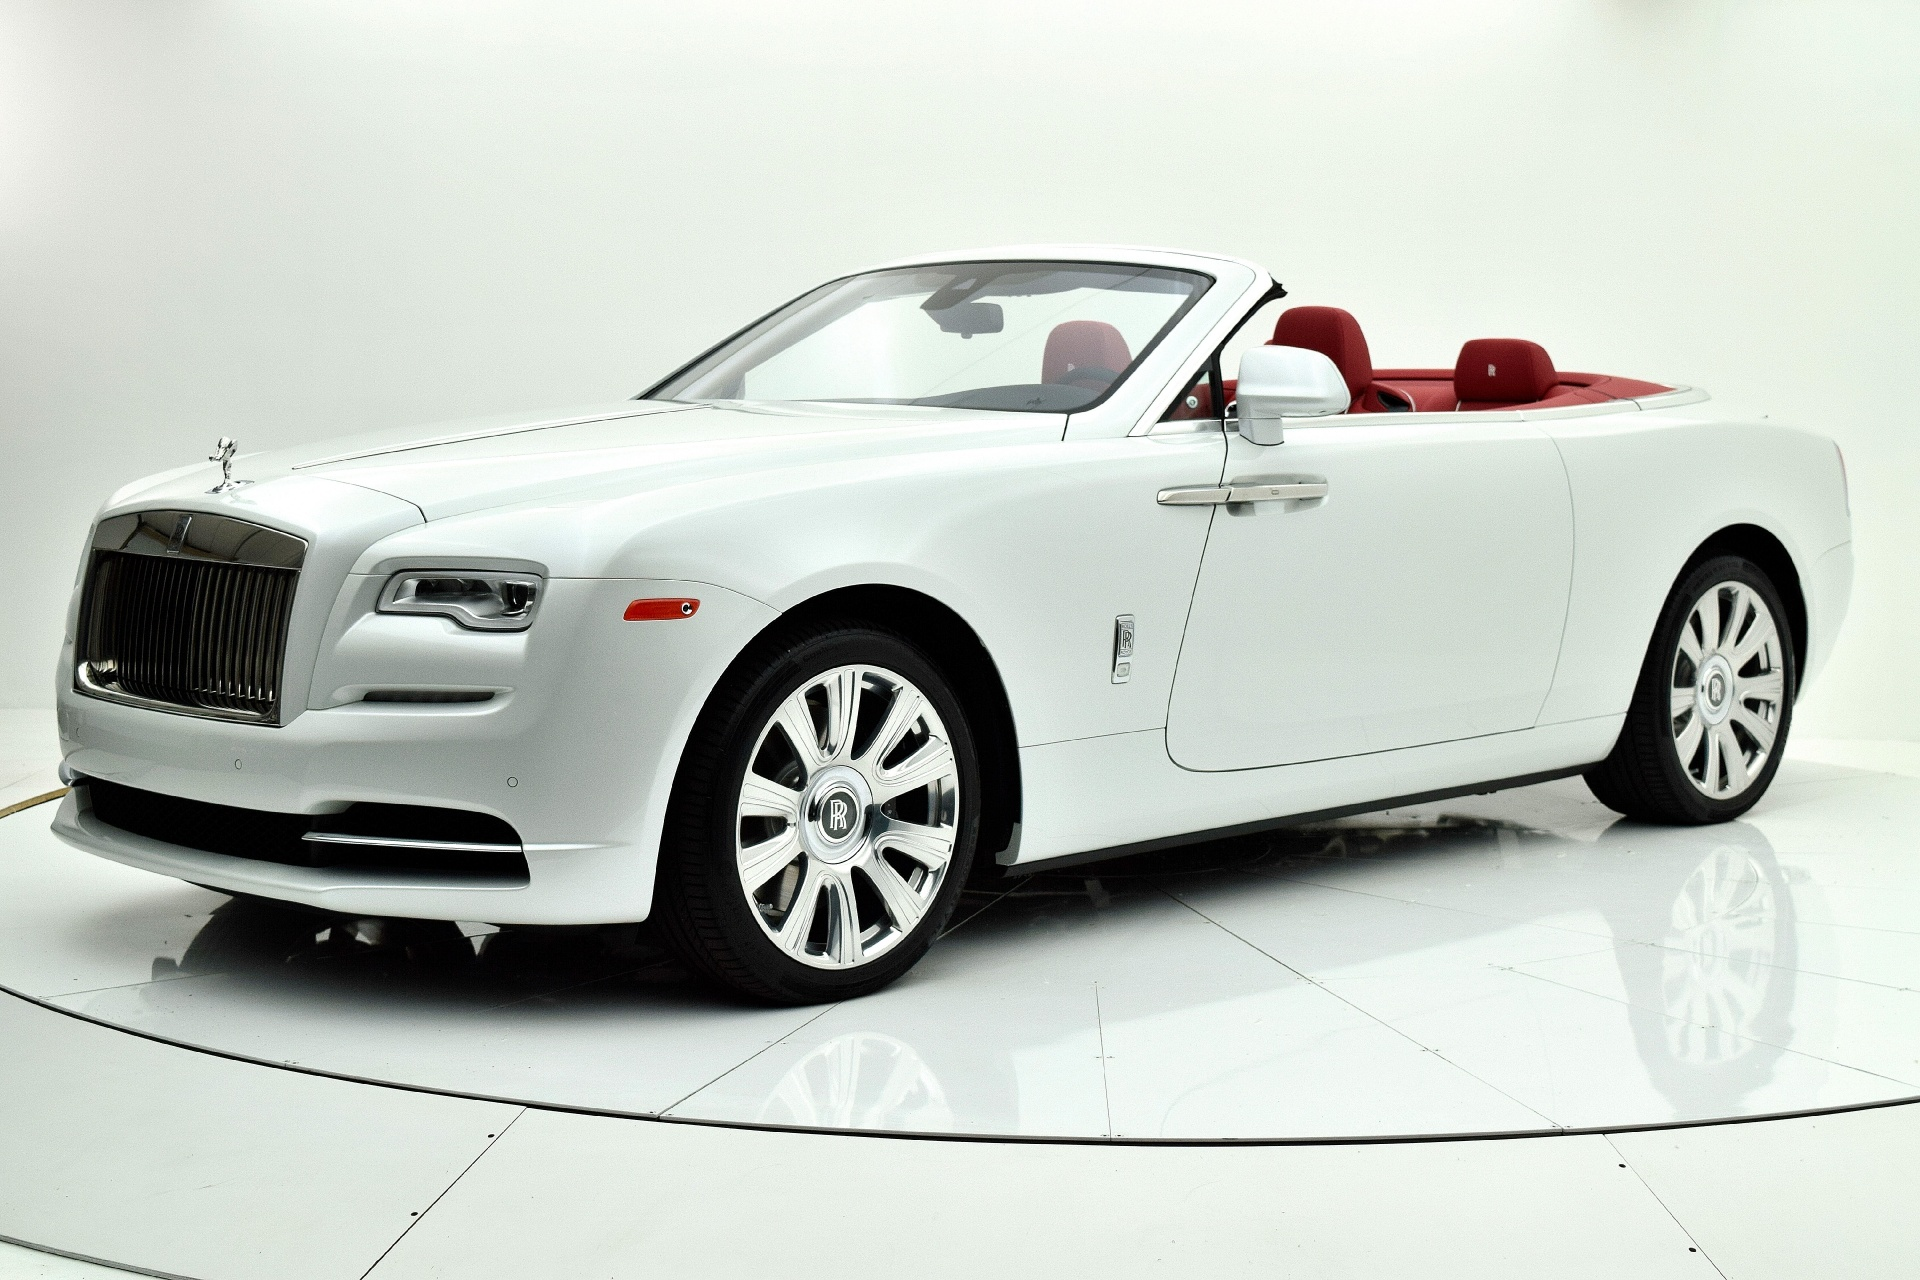 Used 2016 Rolls-Royce Dawn for sale $229,880 at F.C. Kerbeck Aston Martin in Palmyra NJ 08065 2